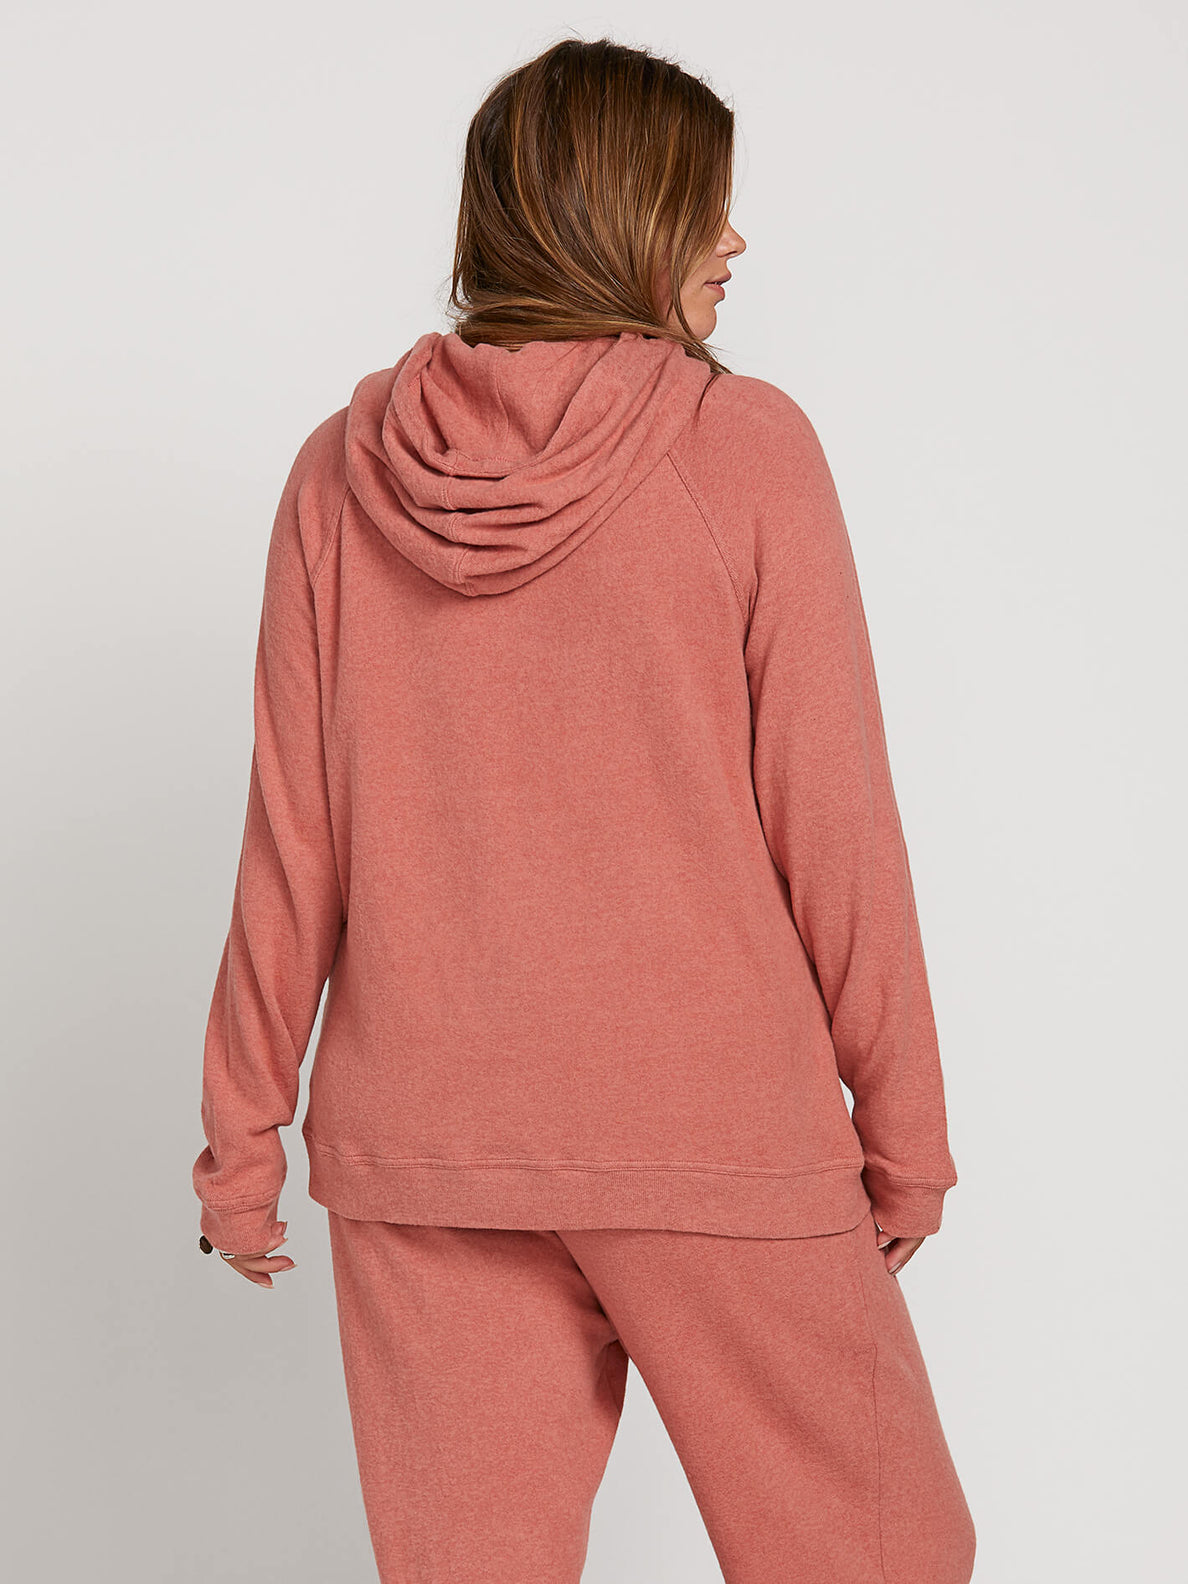 Lived In Lounge Hoodie In Mauve, Back Extended Size View